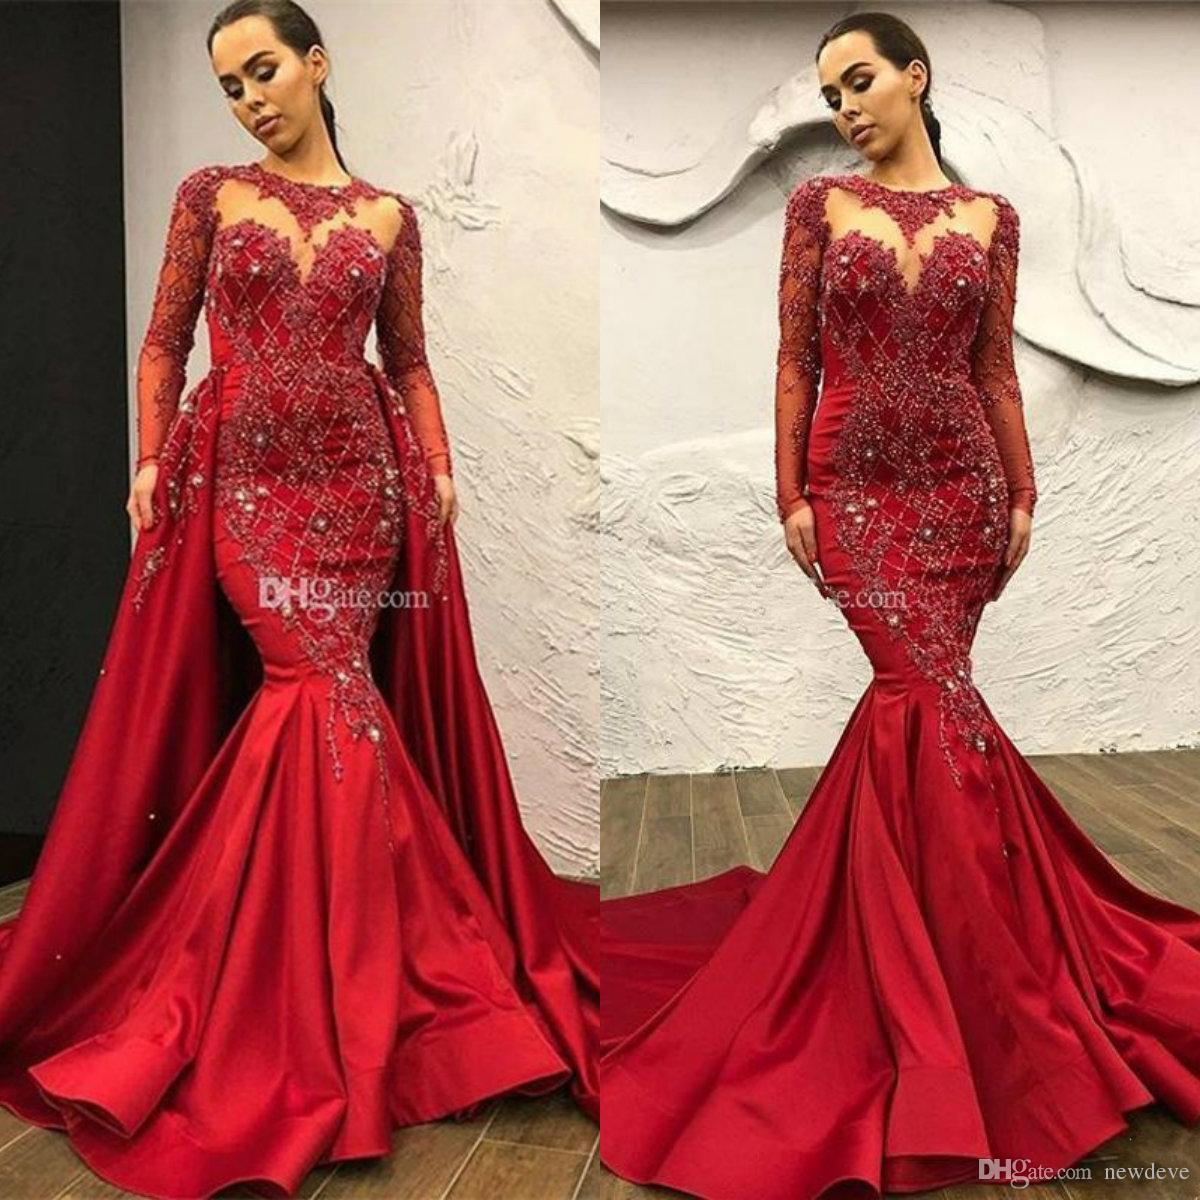 Elegant Mermaid Prom Dresses Detachable Train Beading Appliques Crystal Celebrity Evening Gowns Satin Long Sleeve Special Occasion Dress